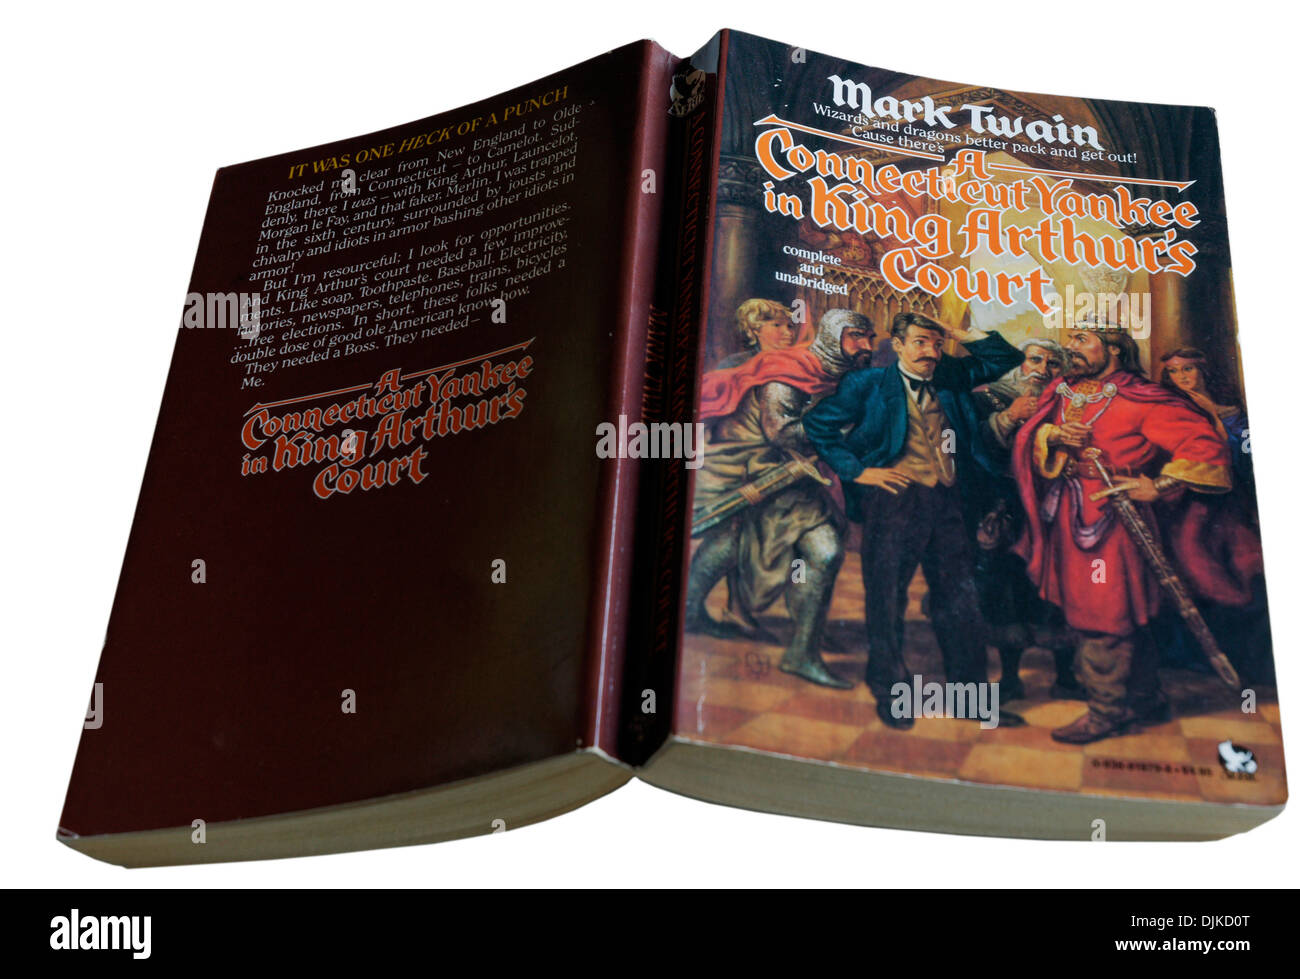 A Connecticut Yankee in King Arthur's Court by Mark Twain - Stock Image